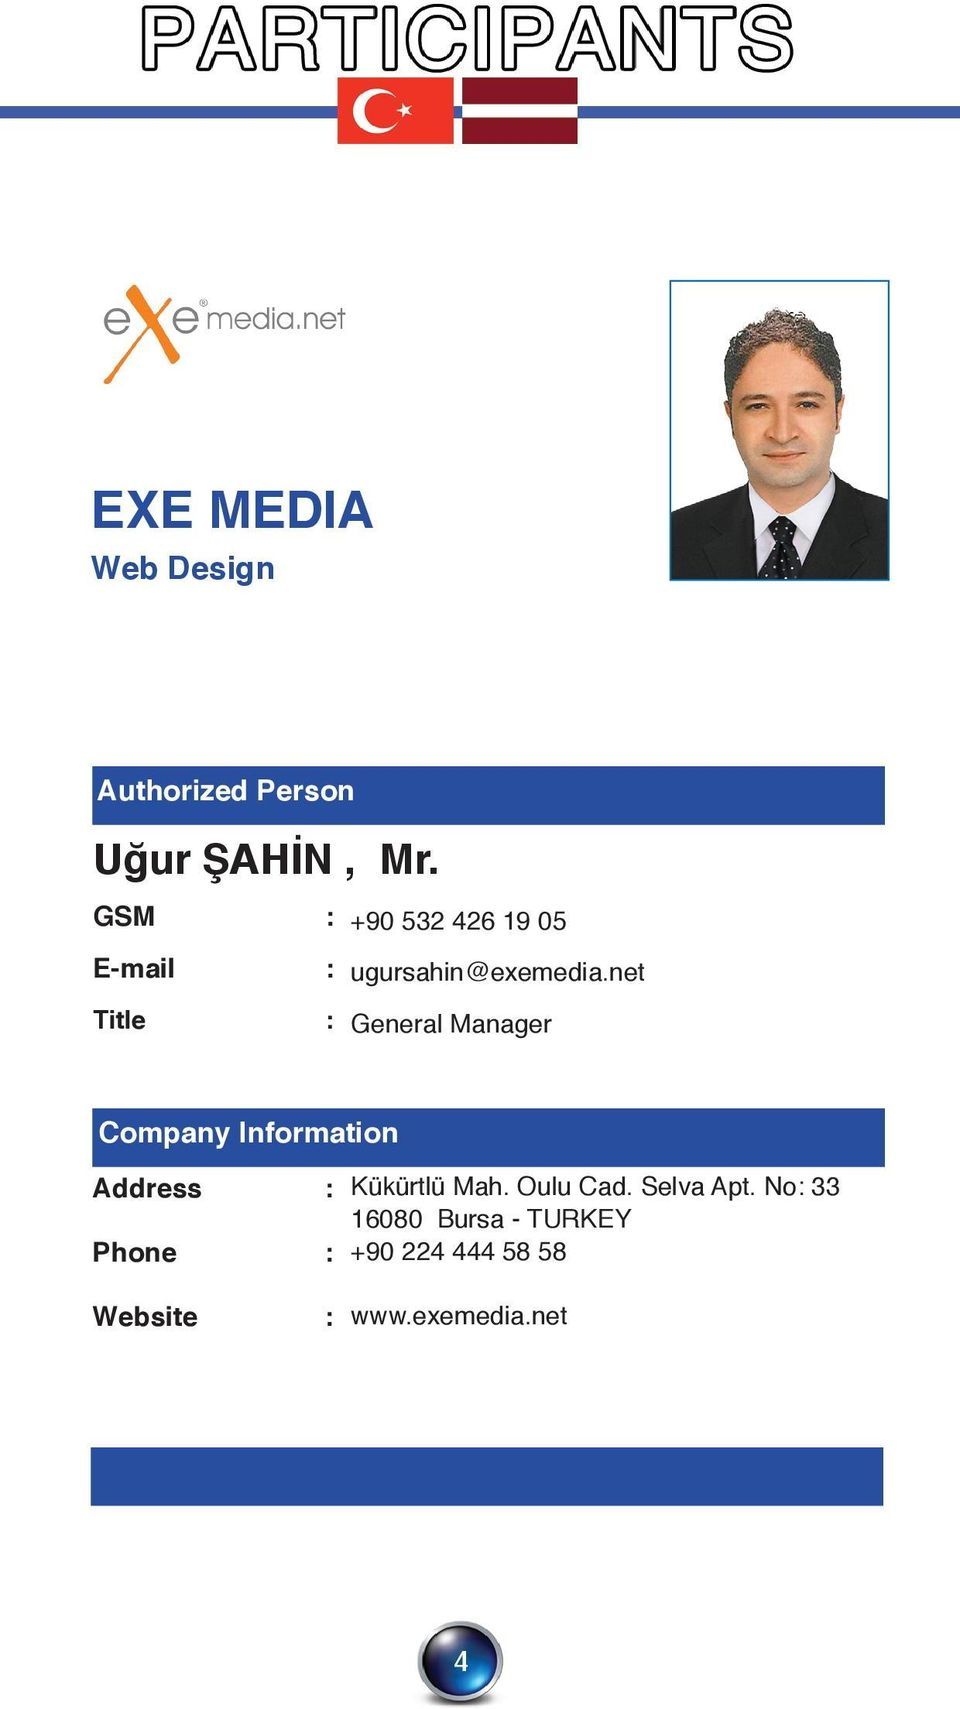 ugursahin@exemedia.net General Manager Website : www.